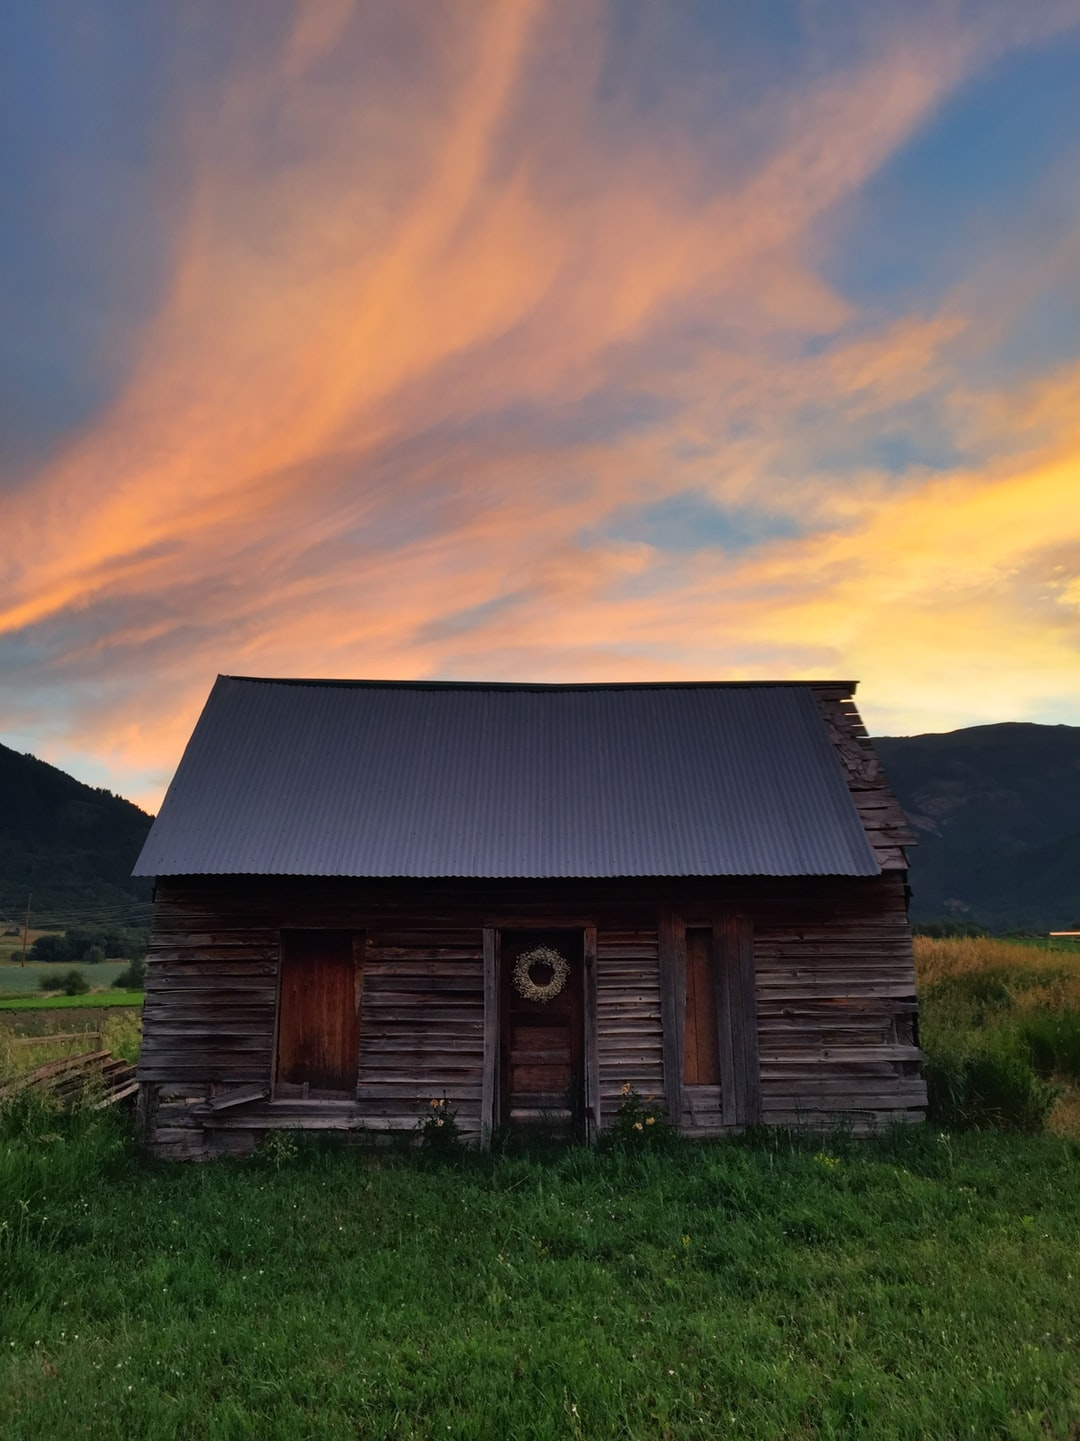 Rural Rustic Cabin And Tree Hd Photo By Bradley Swenson